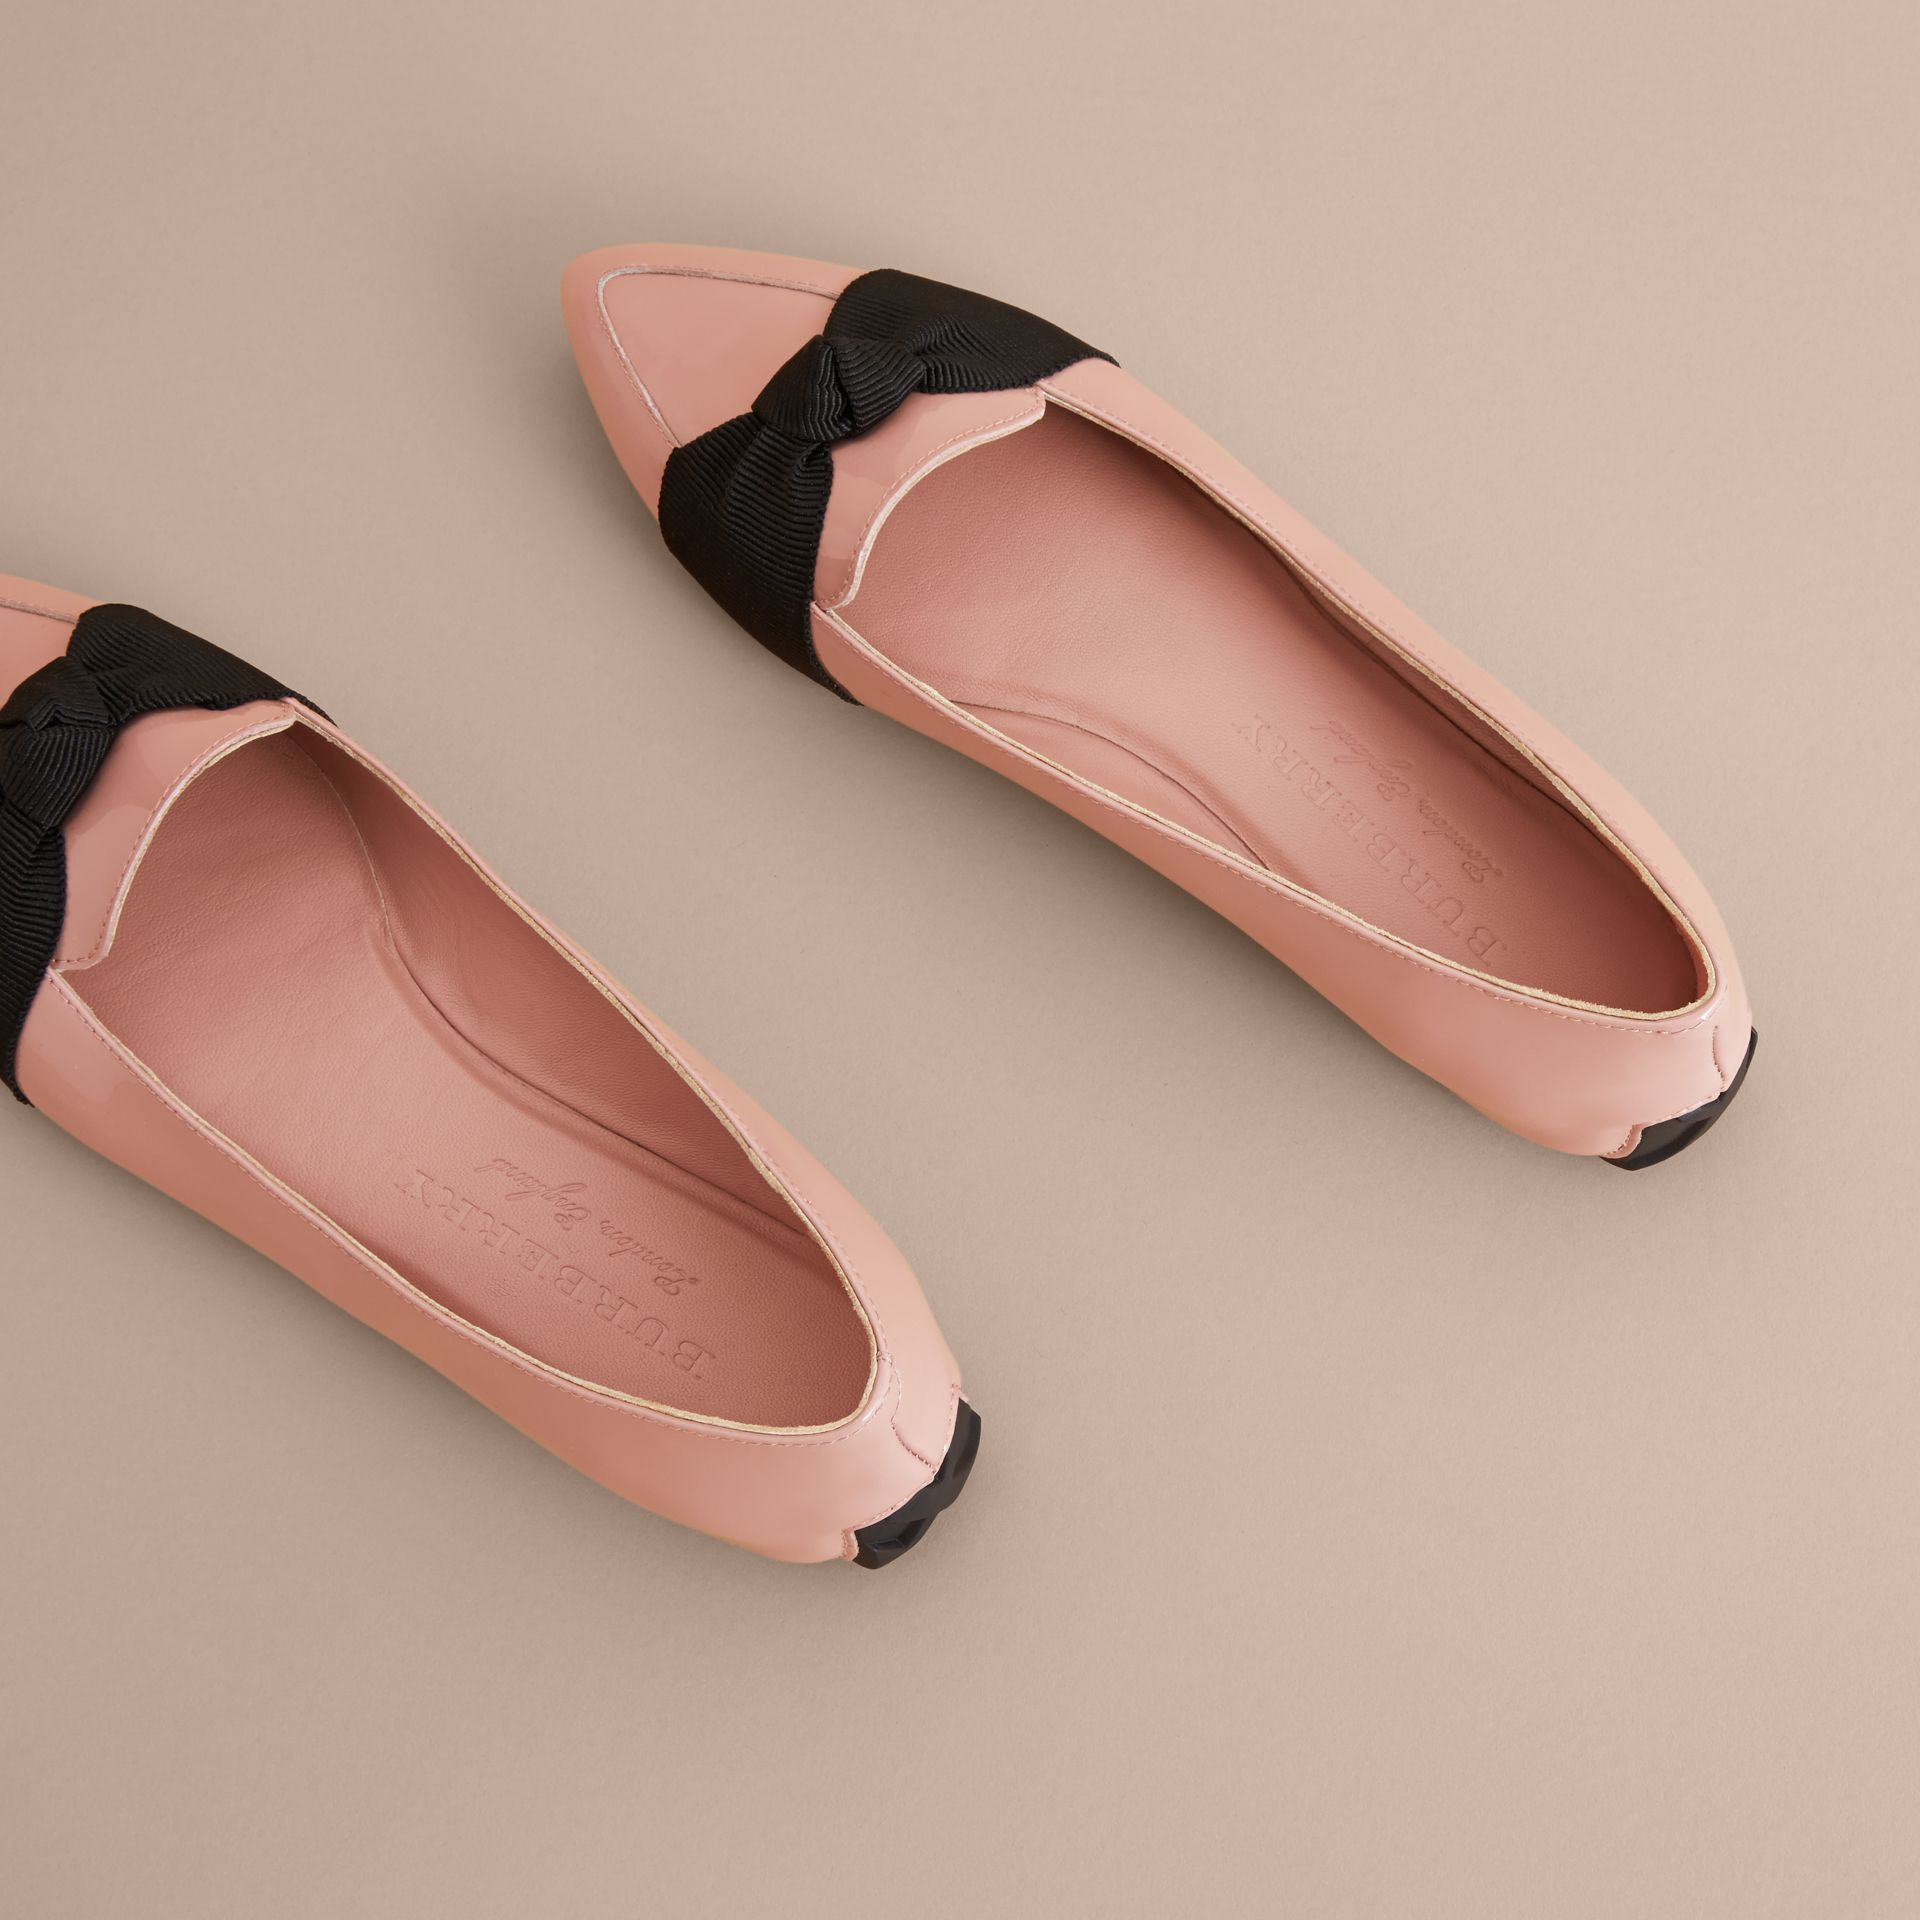 Grosgrain Bow Patent Leather Loafers in Nude Pink - Women | Burberry - gallery image 4